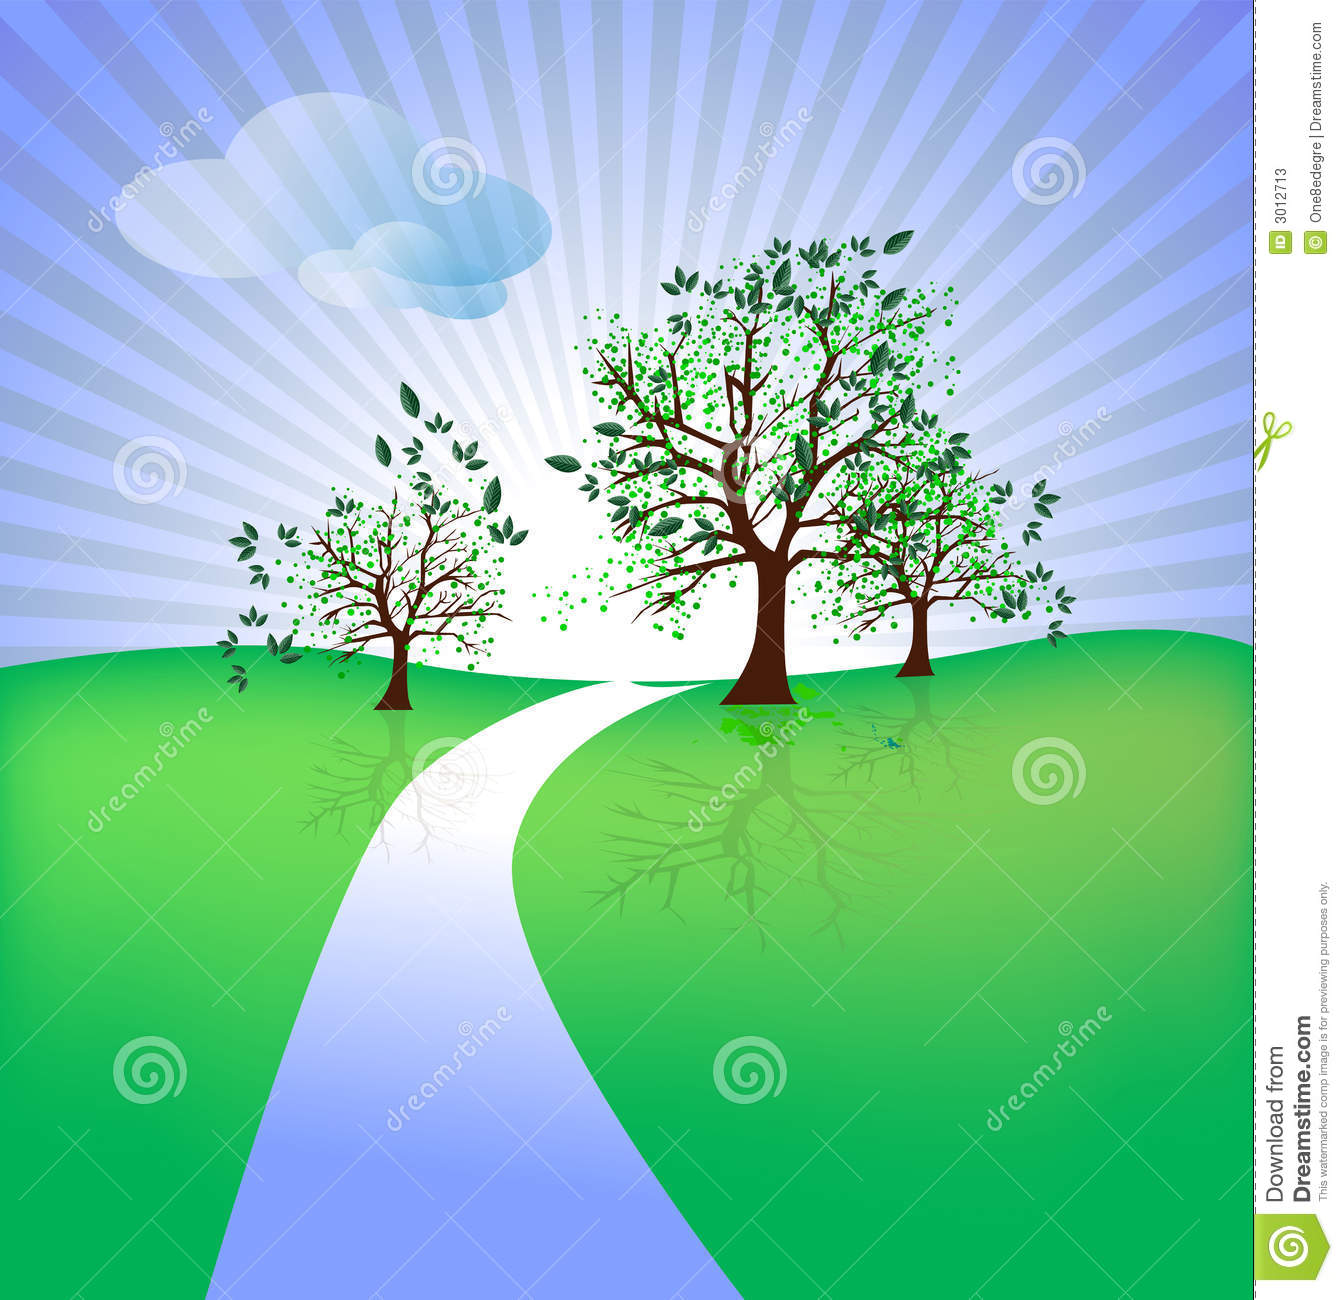 Pathway clipart winding path Winding – Download Path Art